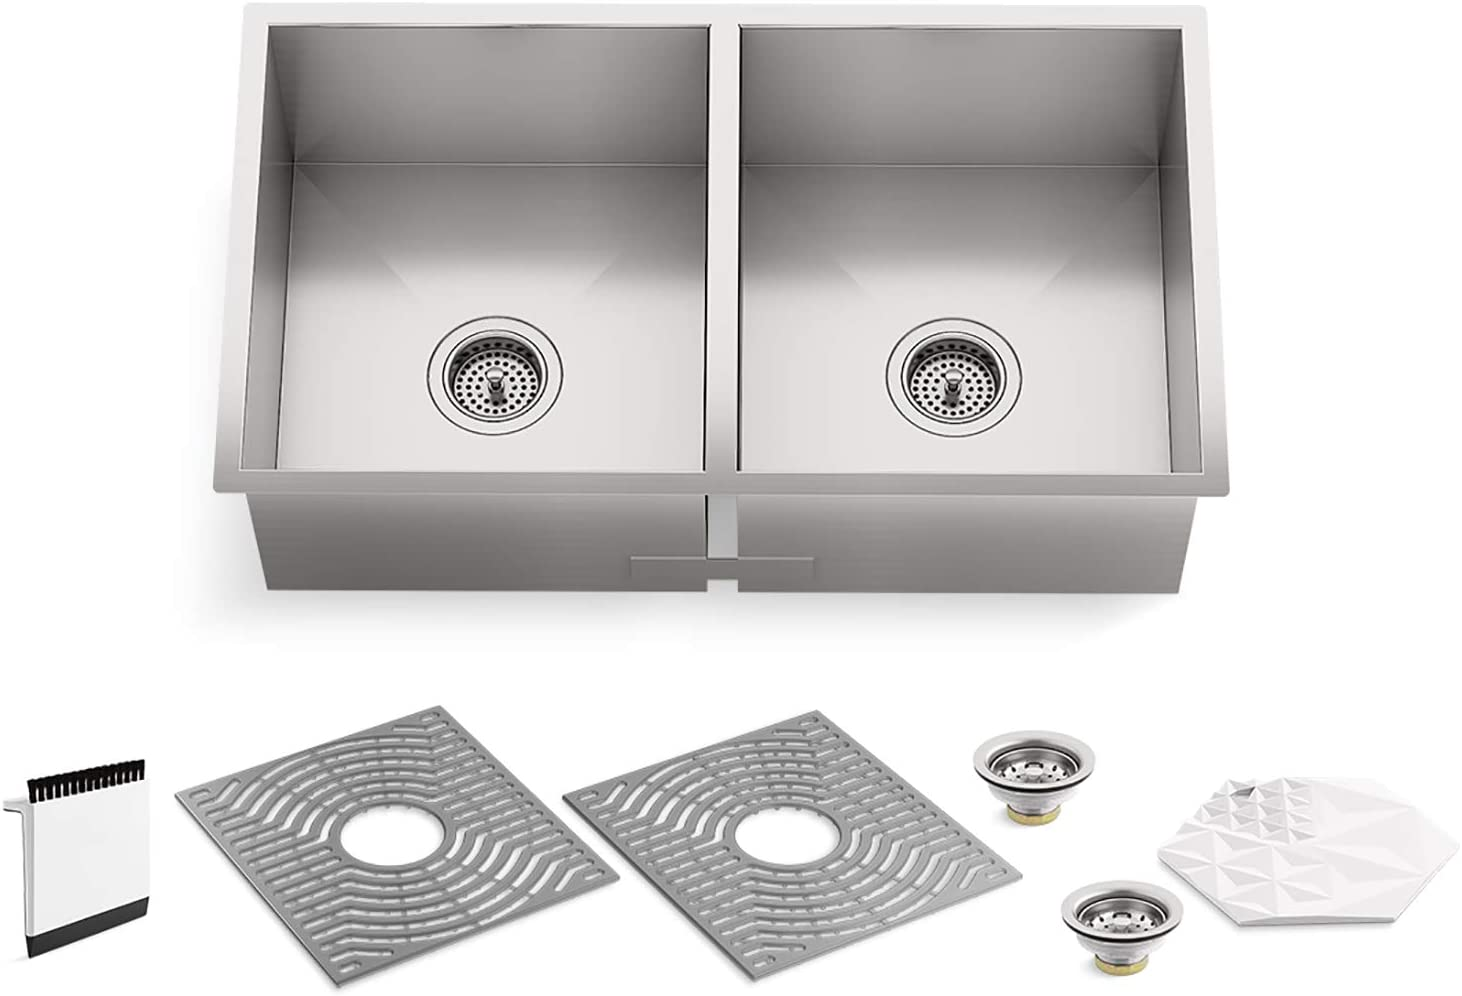 "Kohler 20024-PC-NA STERLING Ludington 32"" Under-Mount Double-Bowl Kitchen Sink with Accessories, Equal Basin, Stainless Steel"